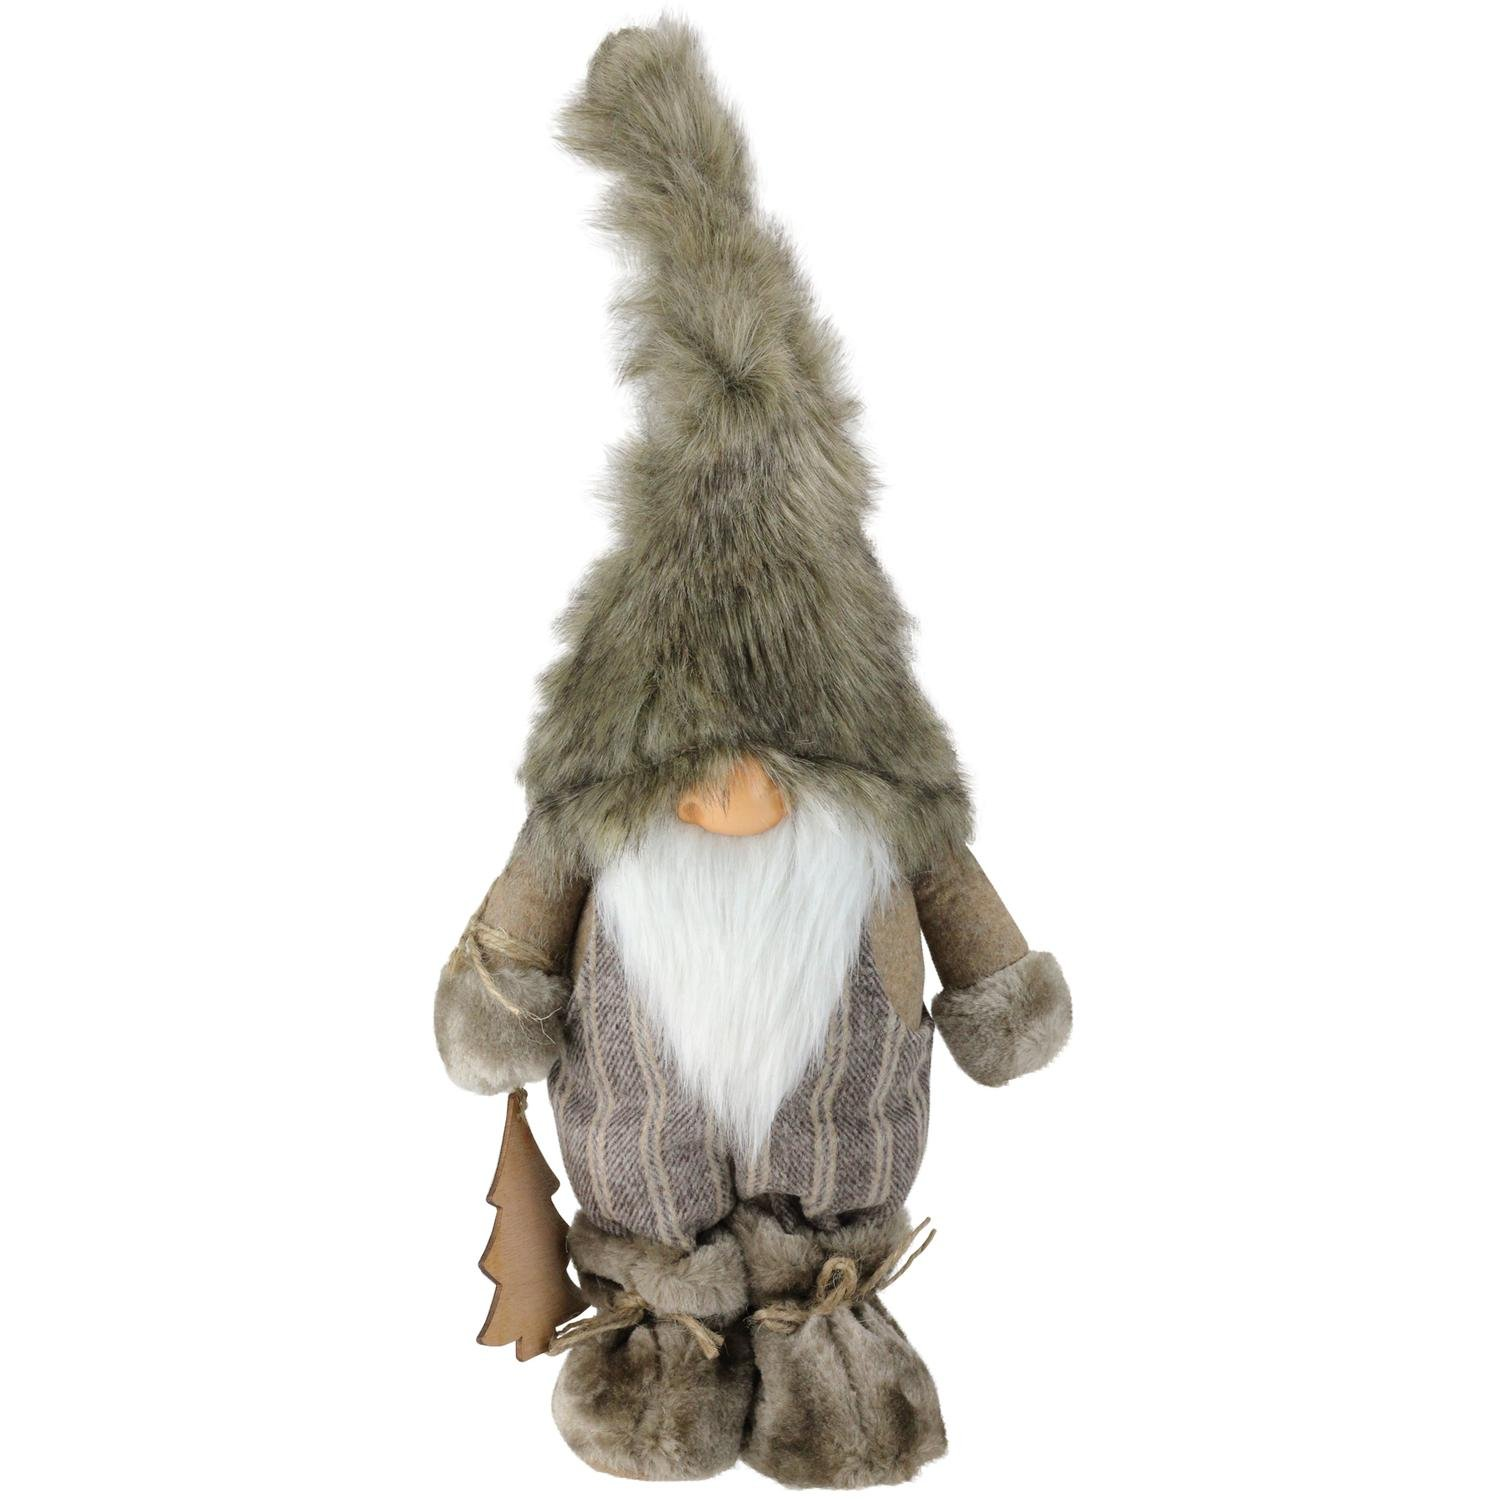 Northlight 16'' Nature's Luxury Decorative Christmas Gnome with Ornament Tabletop Figure